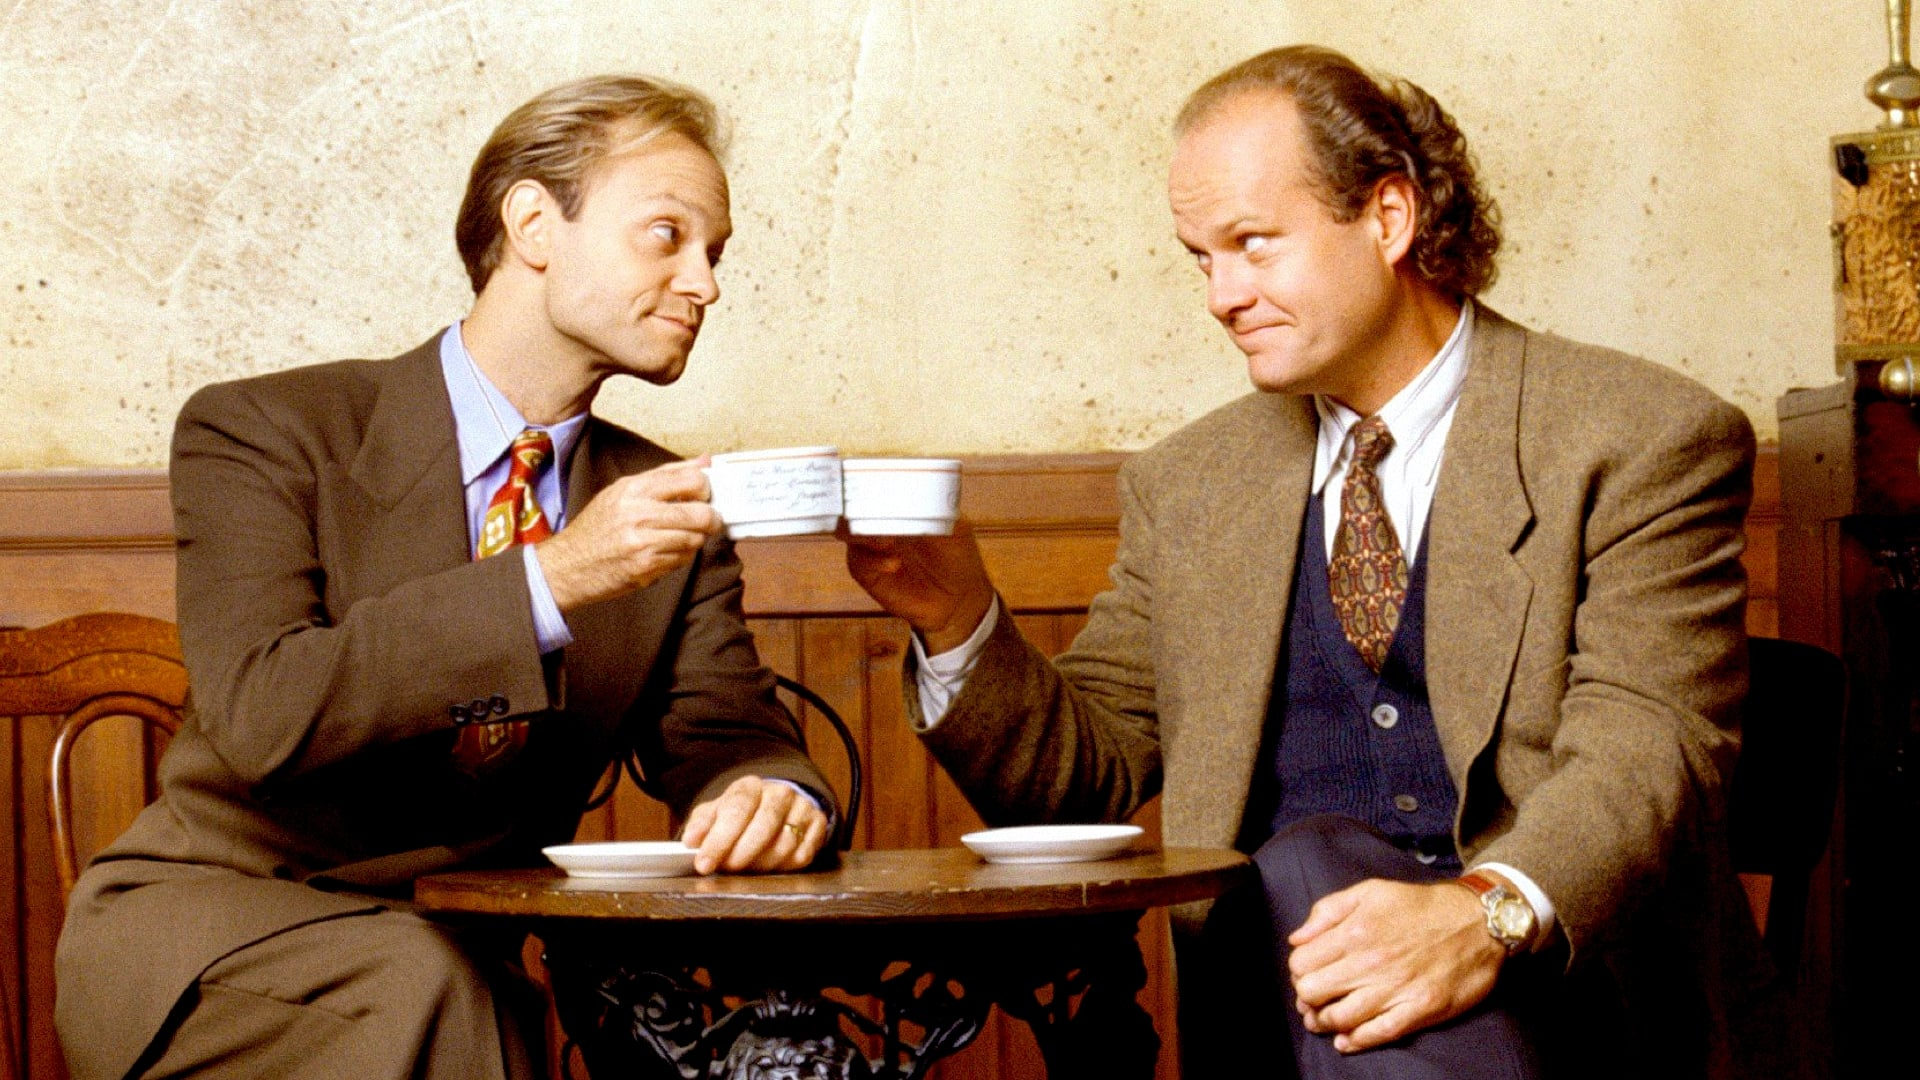 Frasier sequel officially in production at Paramount+